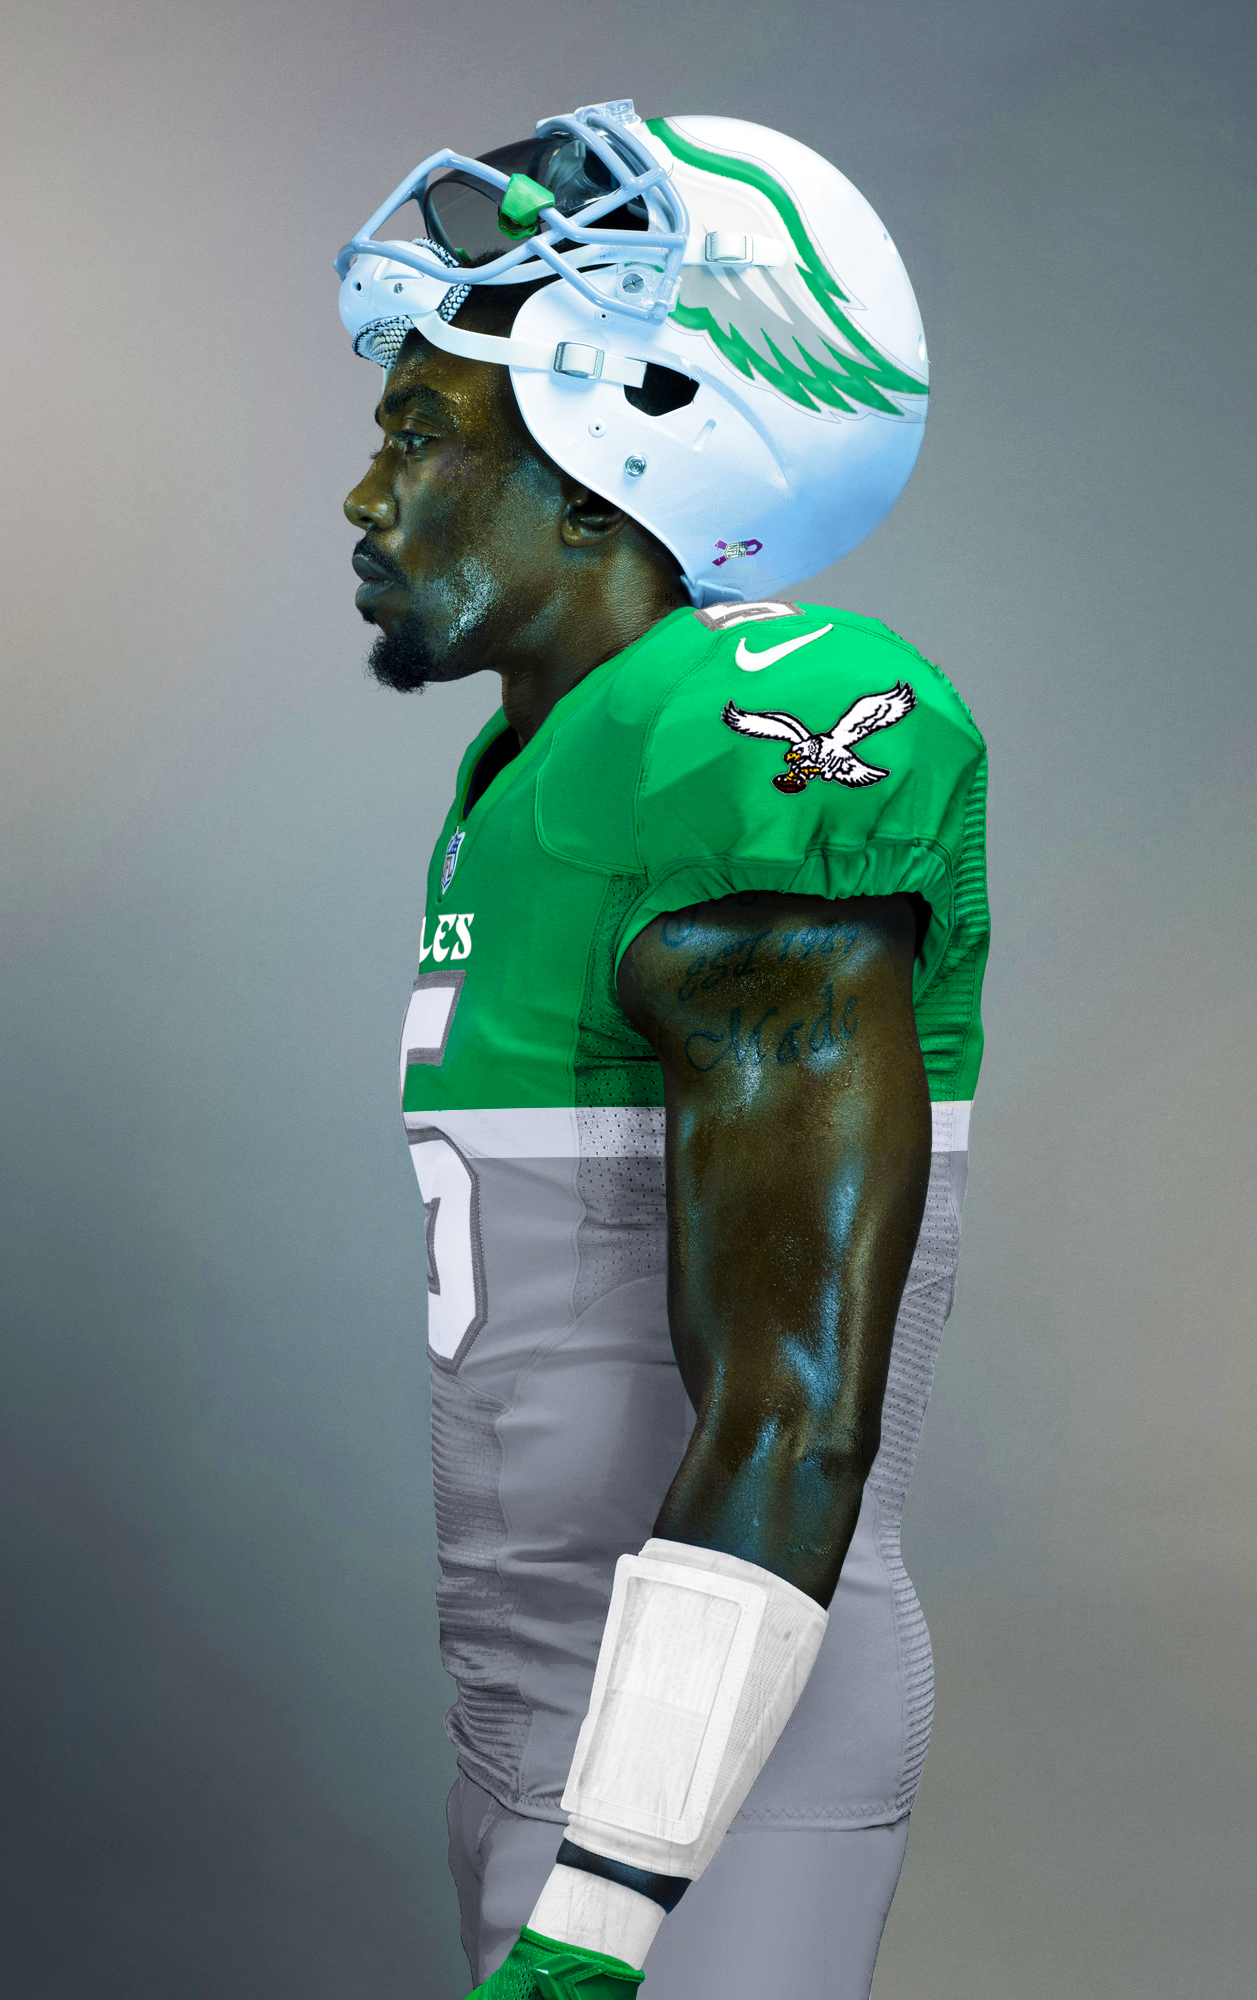 8ddb03fc542 Image result for kelly green jerseys eagles